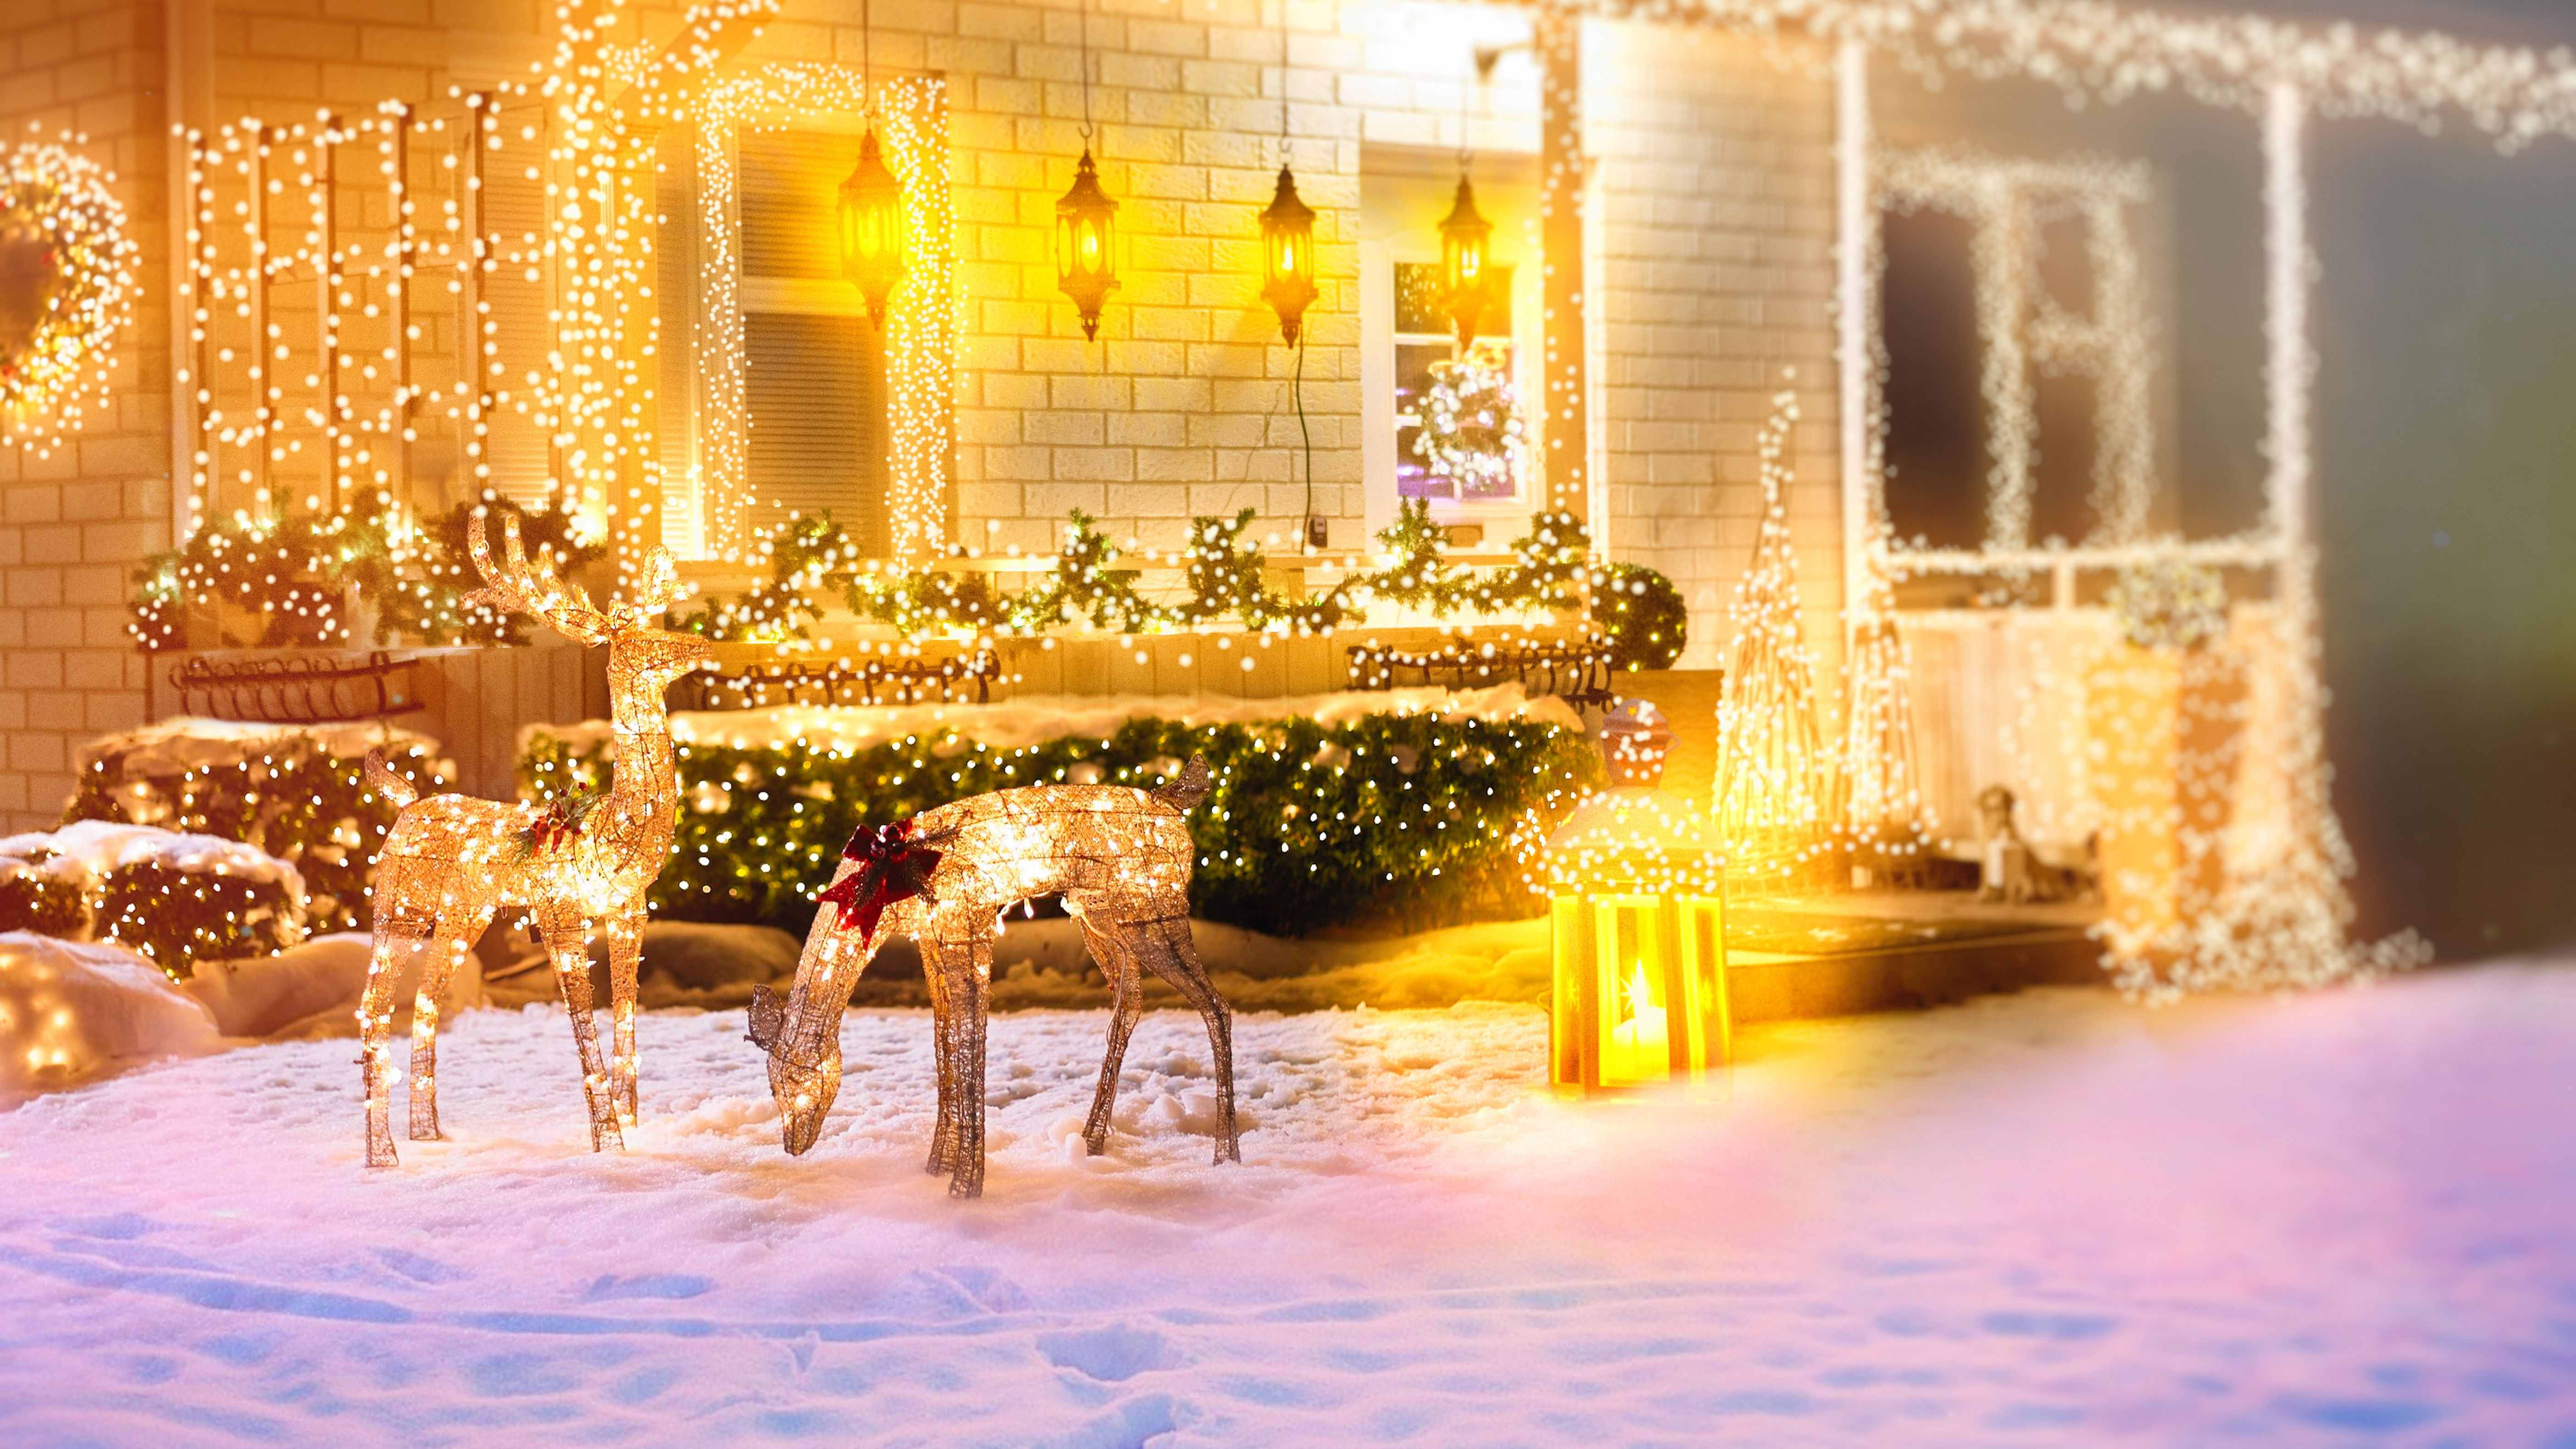 Outdoor Christmas decoration buying guide